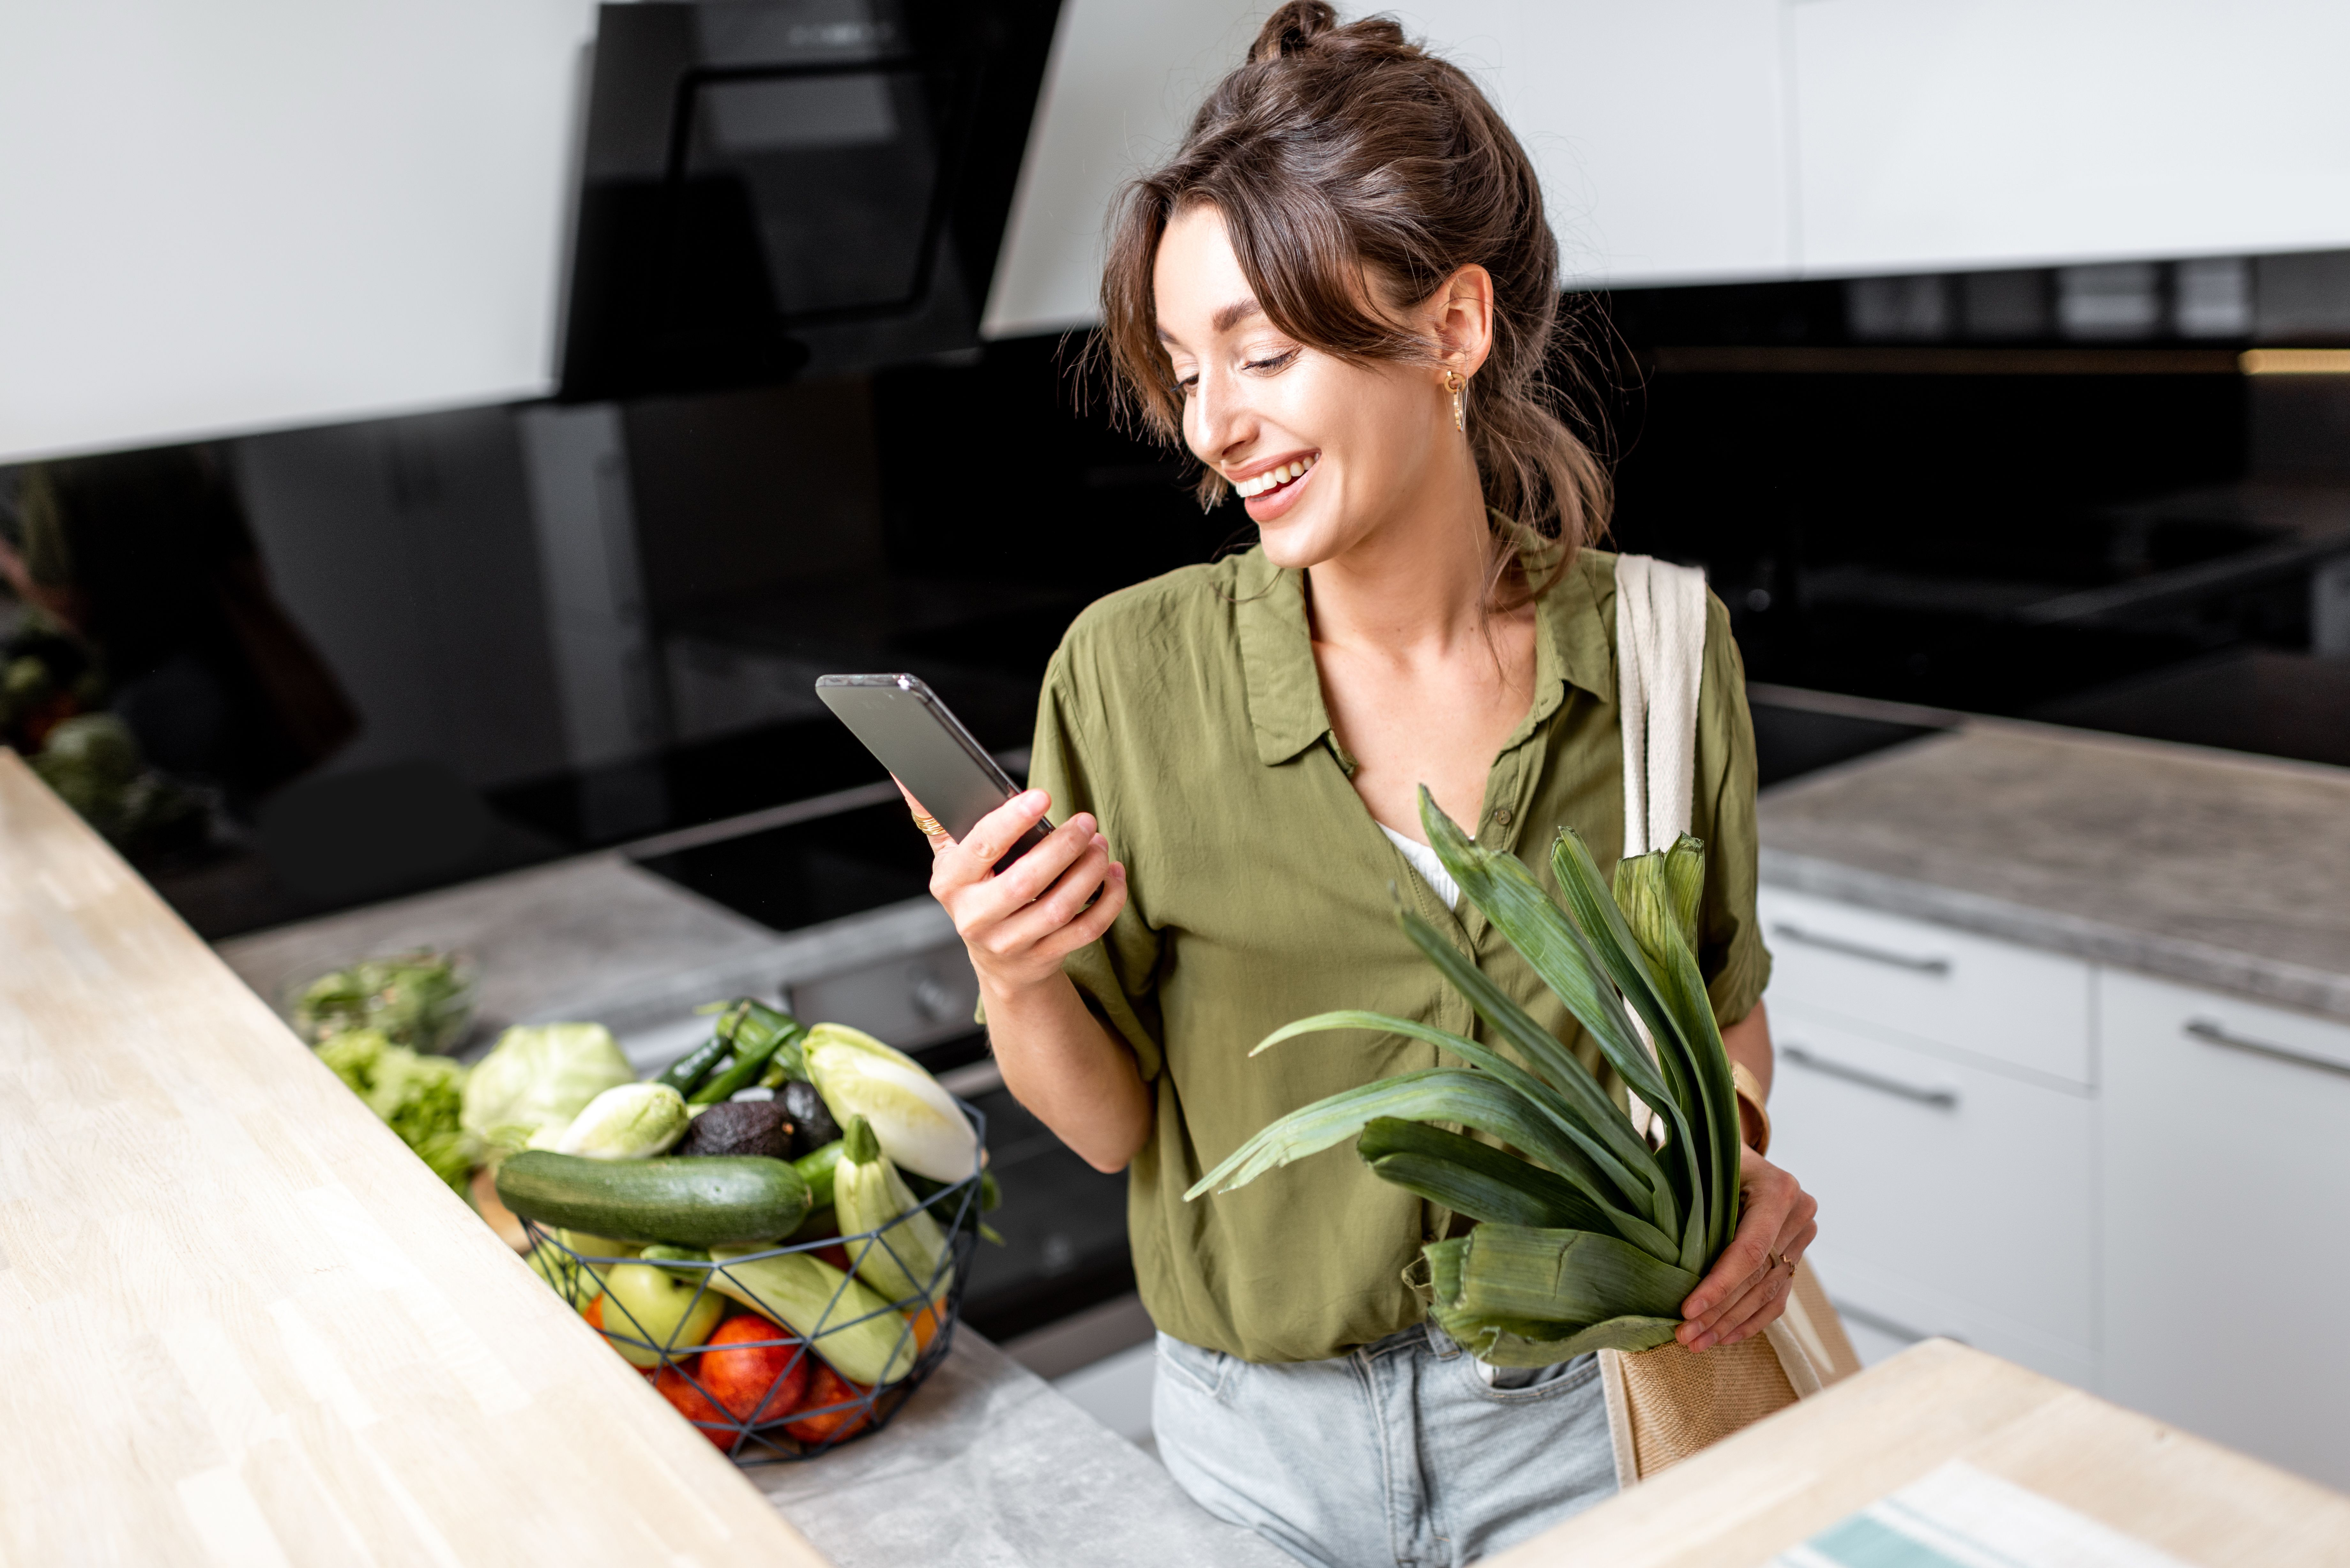 /egrocery-apps-can-help-connect-buyers-with-farmers-542c37fo feature image